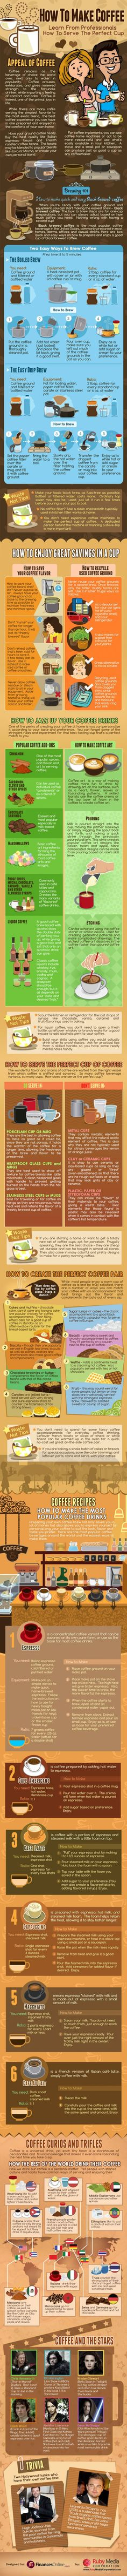 What's your #coffee fix? #Infographic